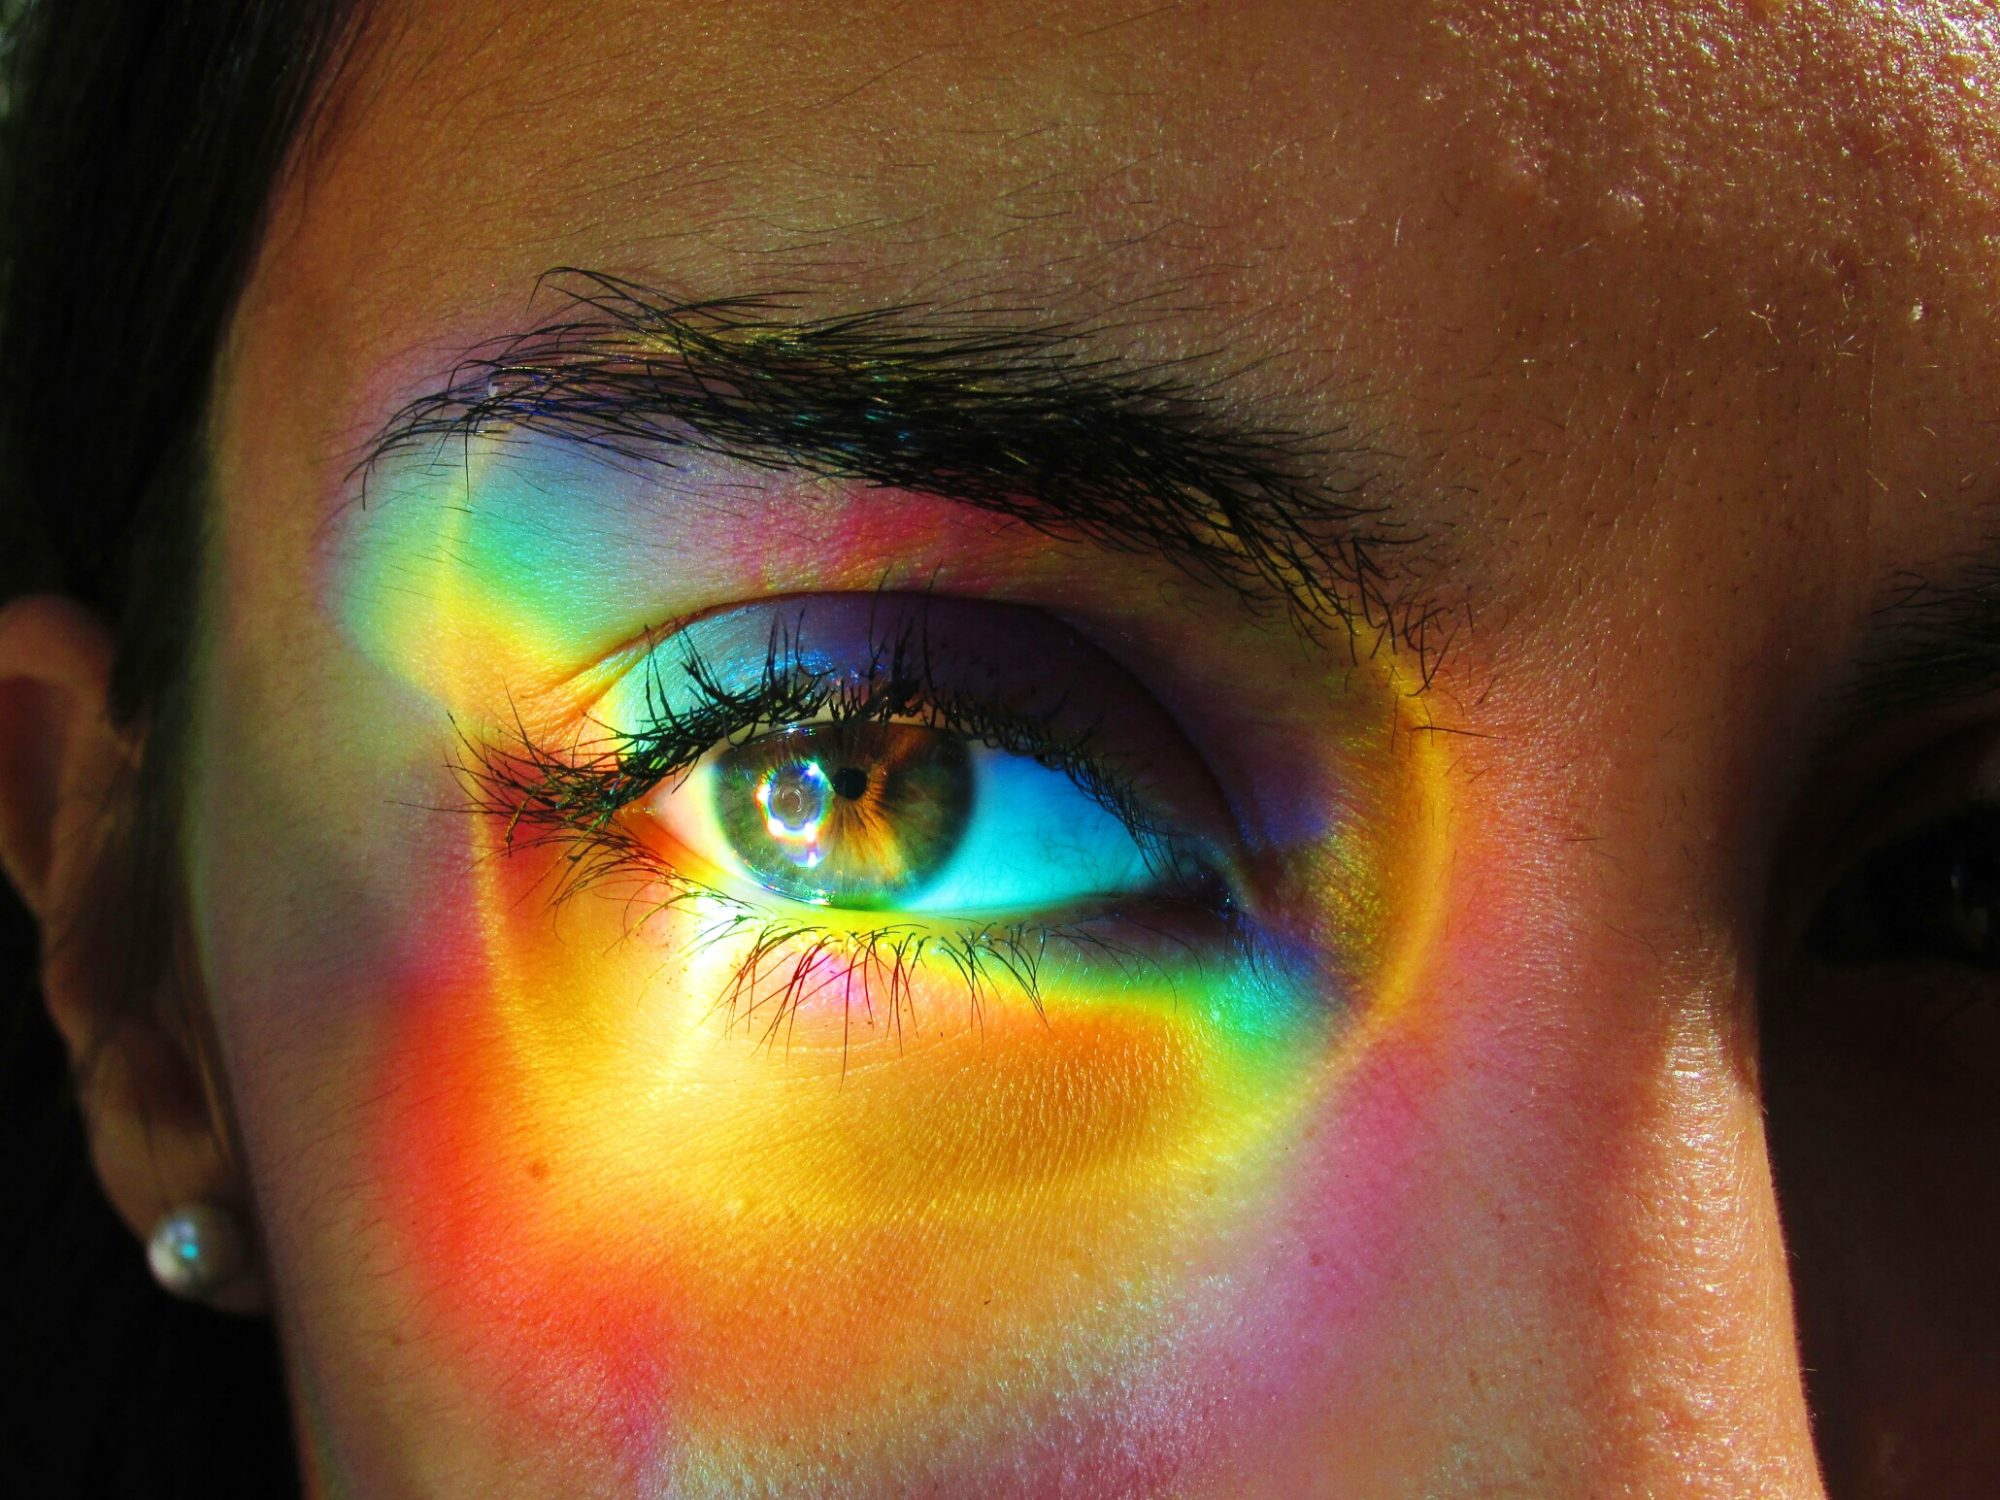 eye pupils show stress rainbow refraction light